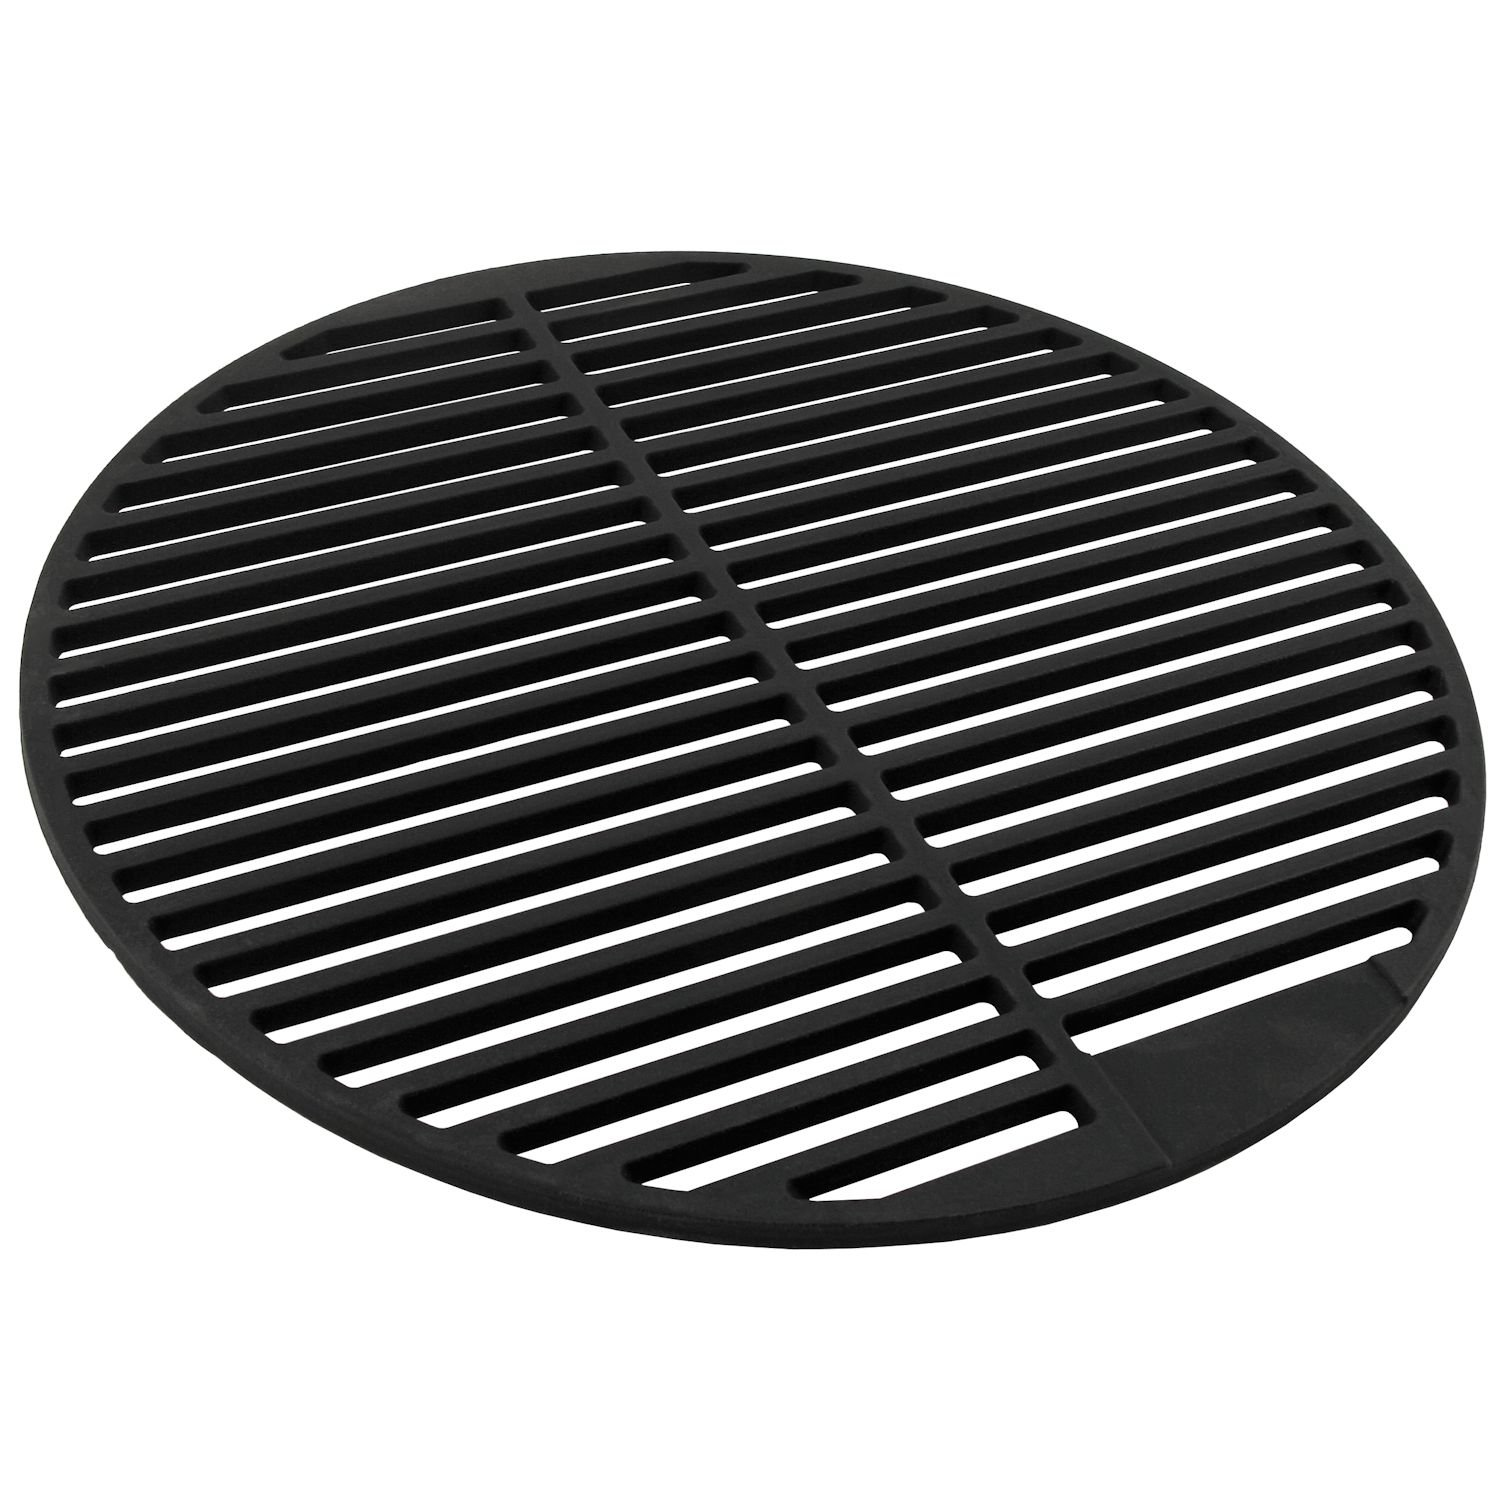 cs-trading Round Cast Iron Grill Grate, enameled (Ø 45 cm) BBQ Barbecue